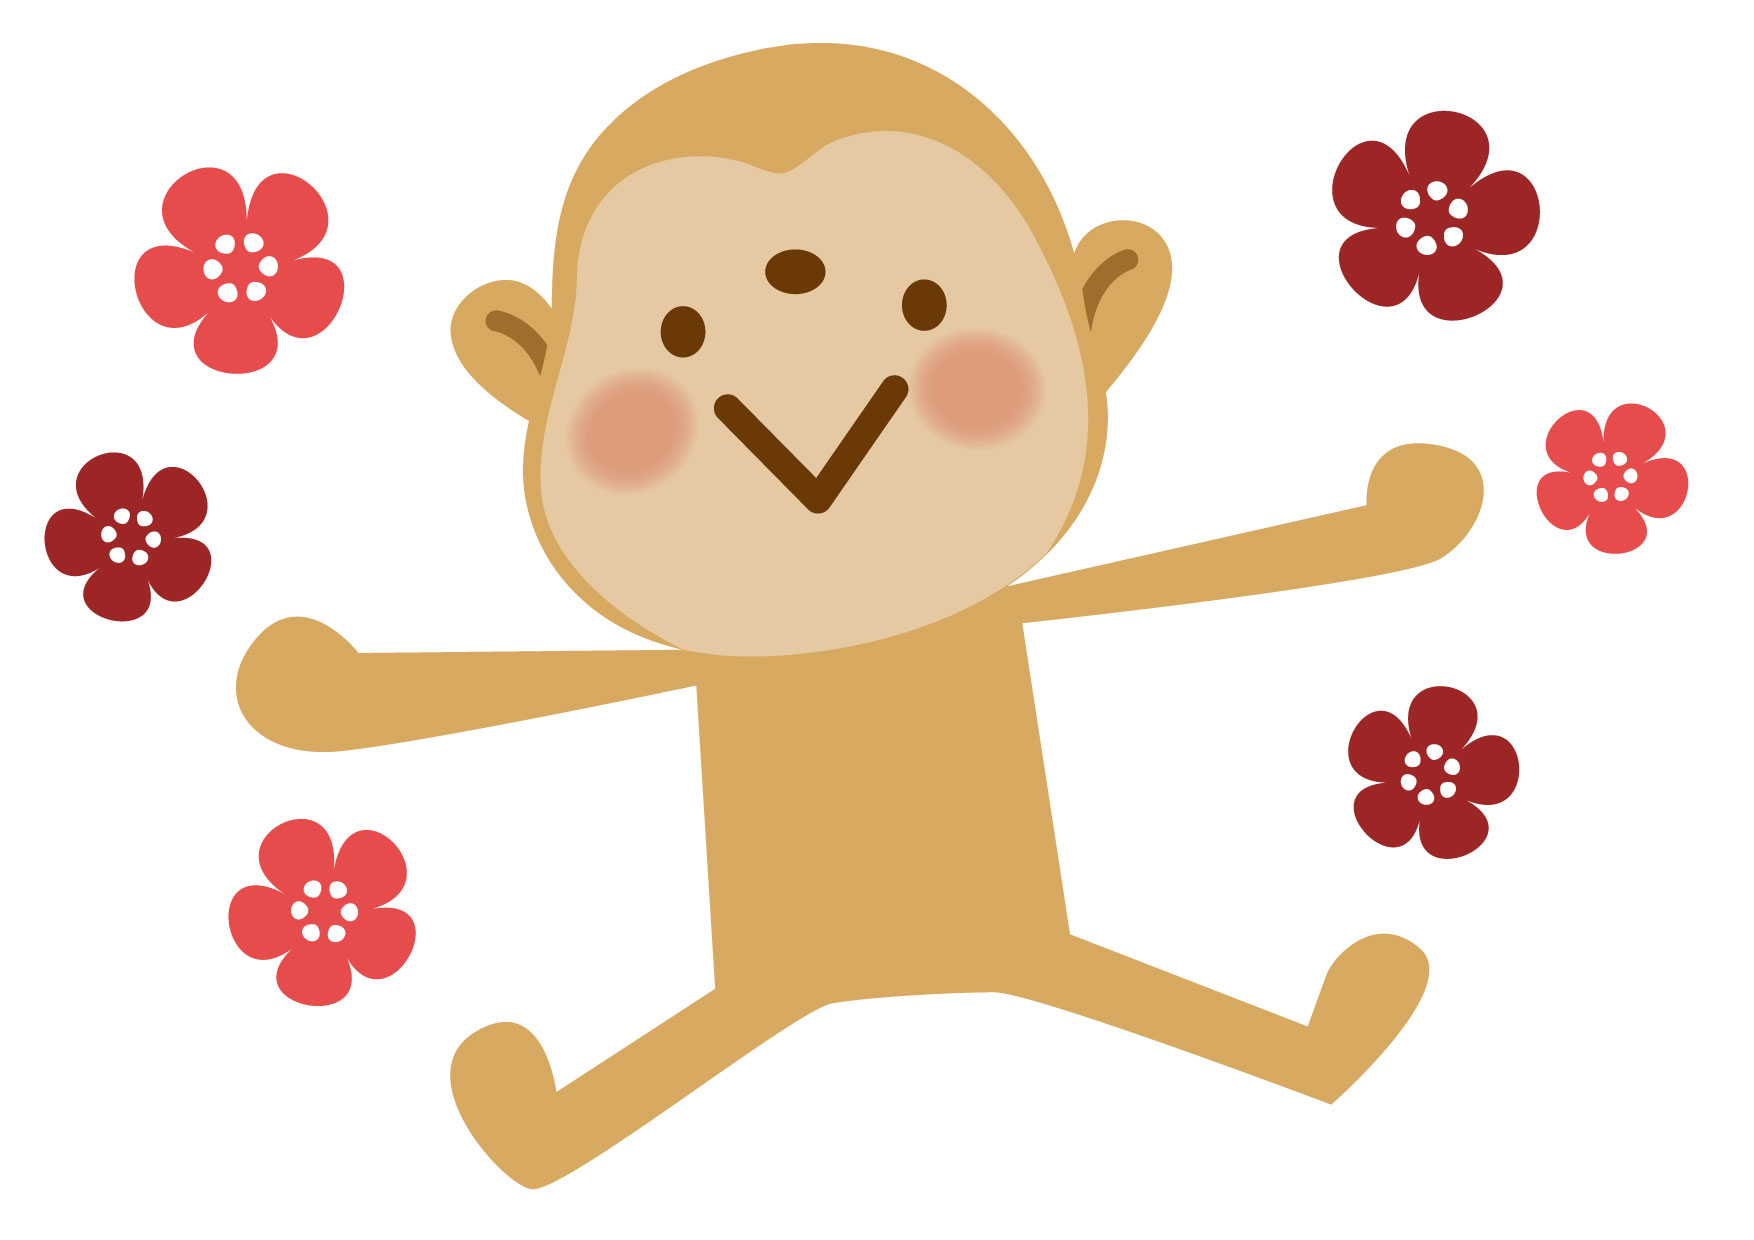 可愛いイラスト無料|さる 梅 − free illustration New Year's Monkey plums